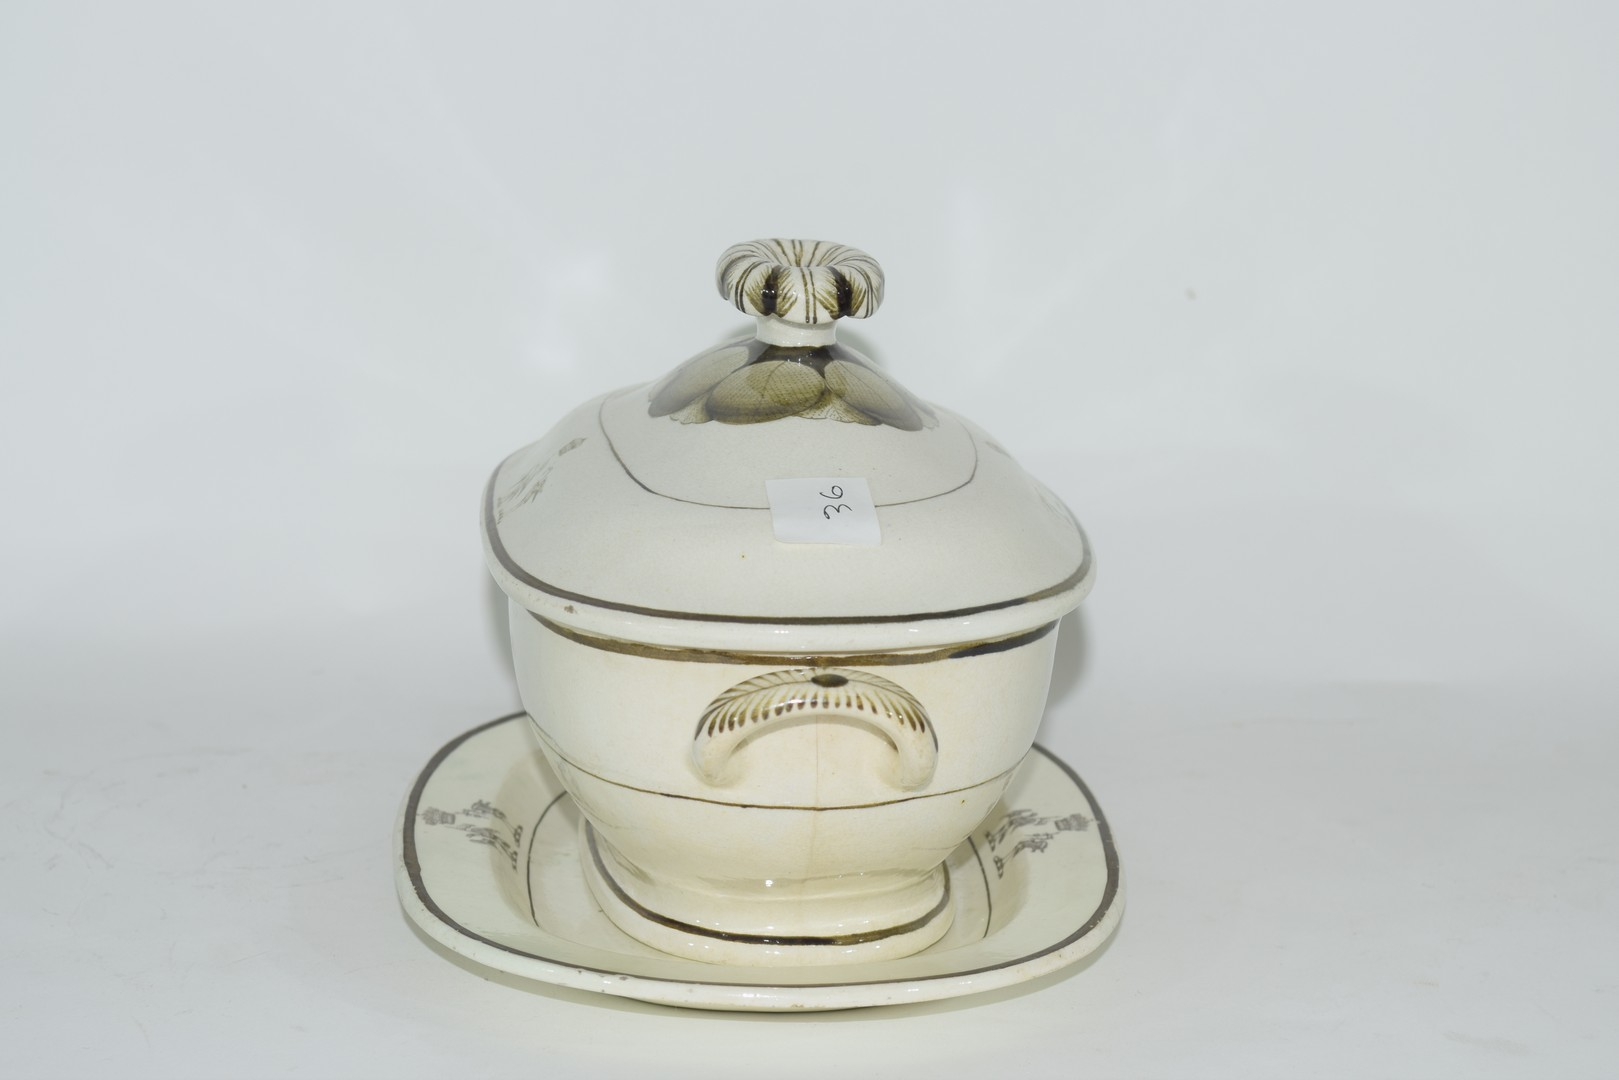 Late 18th century Rogers pearlware small tureen - Image 4 of 6